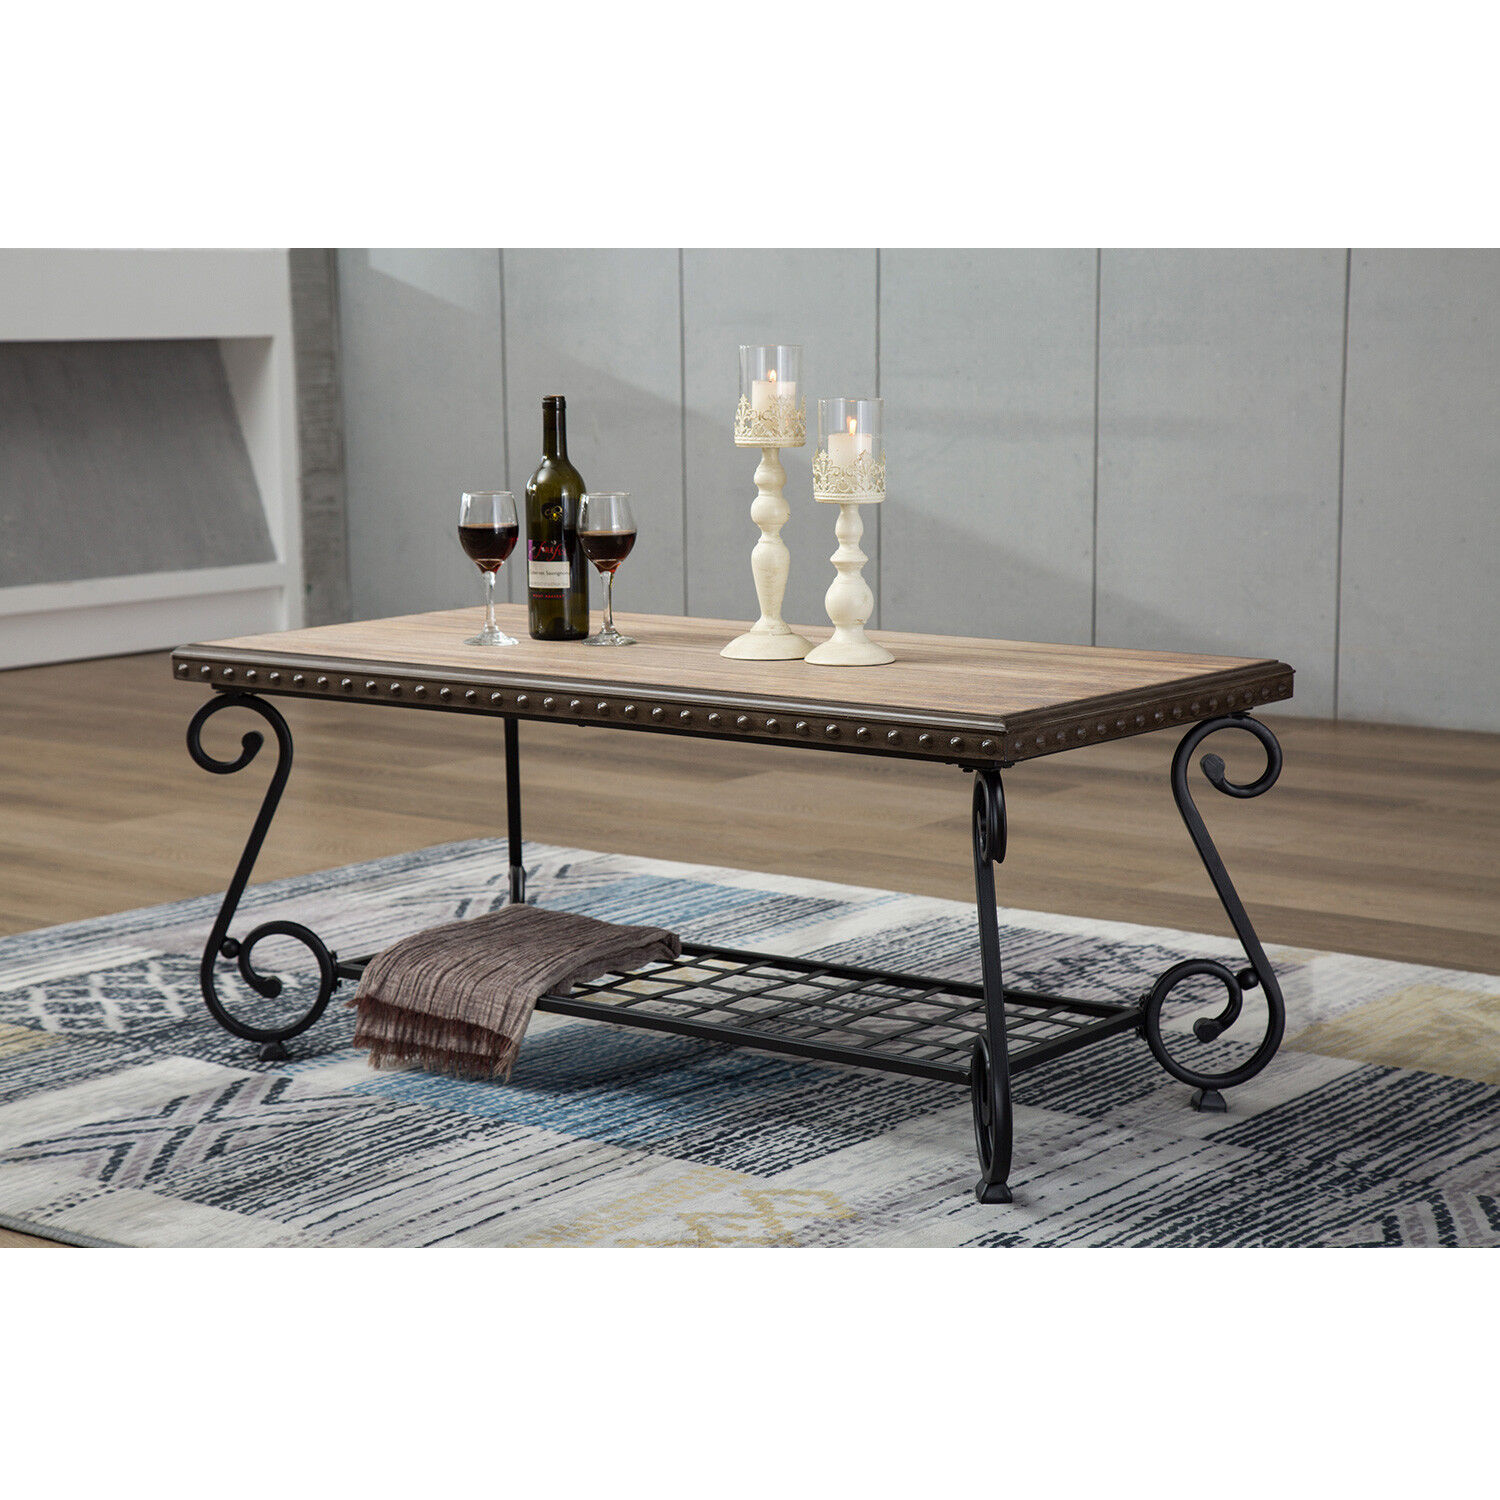 how to make a sofa table top homcom fold out futon bed single design industrial style coffee 2 shelf tea side details about metal frame